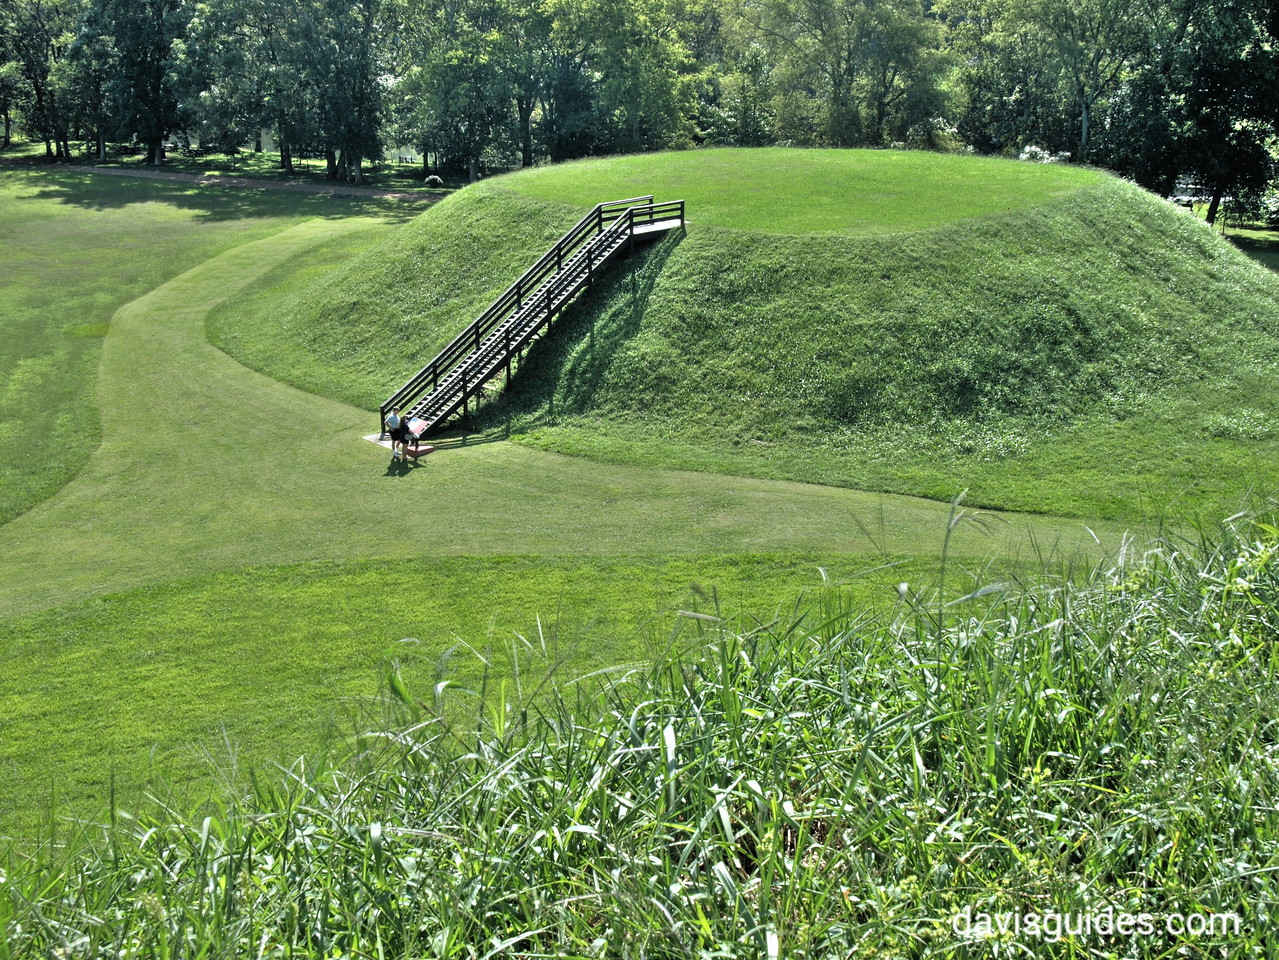 Etowah Mounds State Historic Site